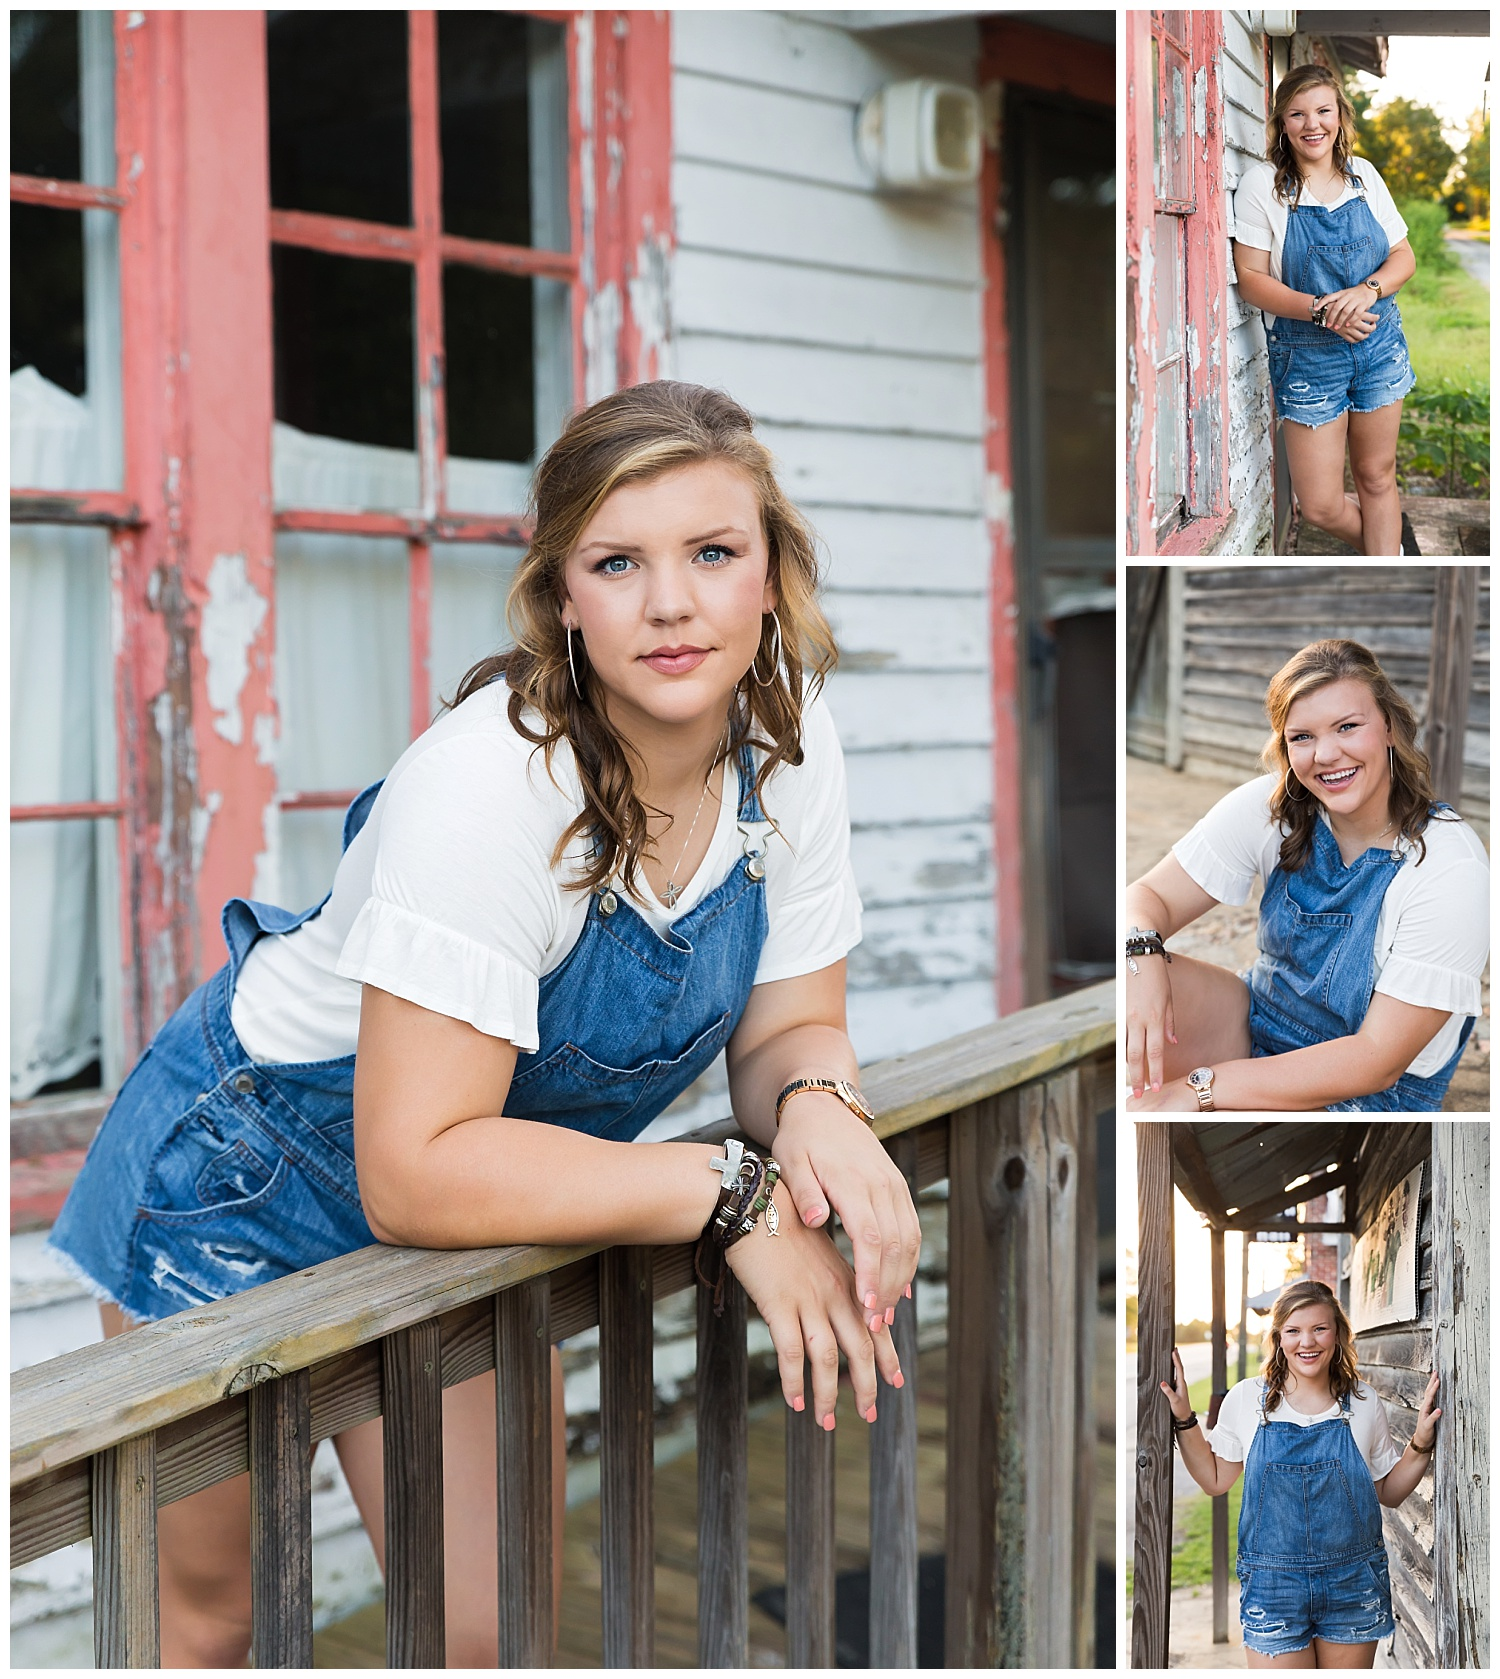 rustic country girl overalls senior photos auburn alabama lbeesleyphoto